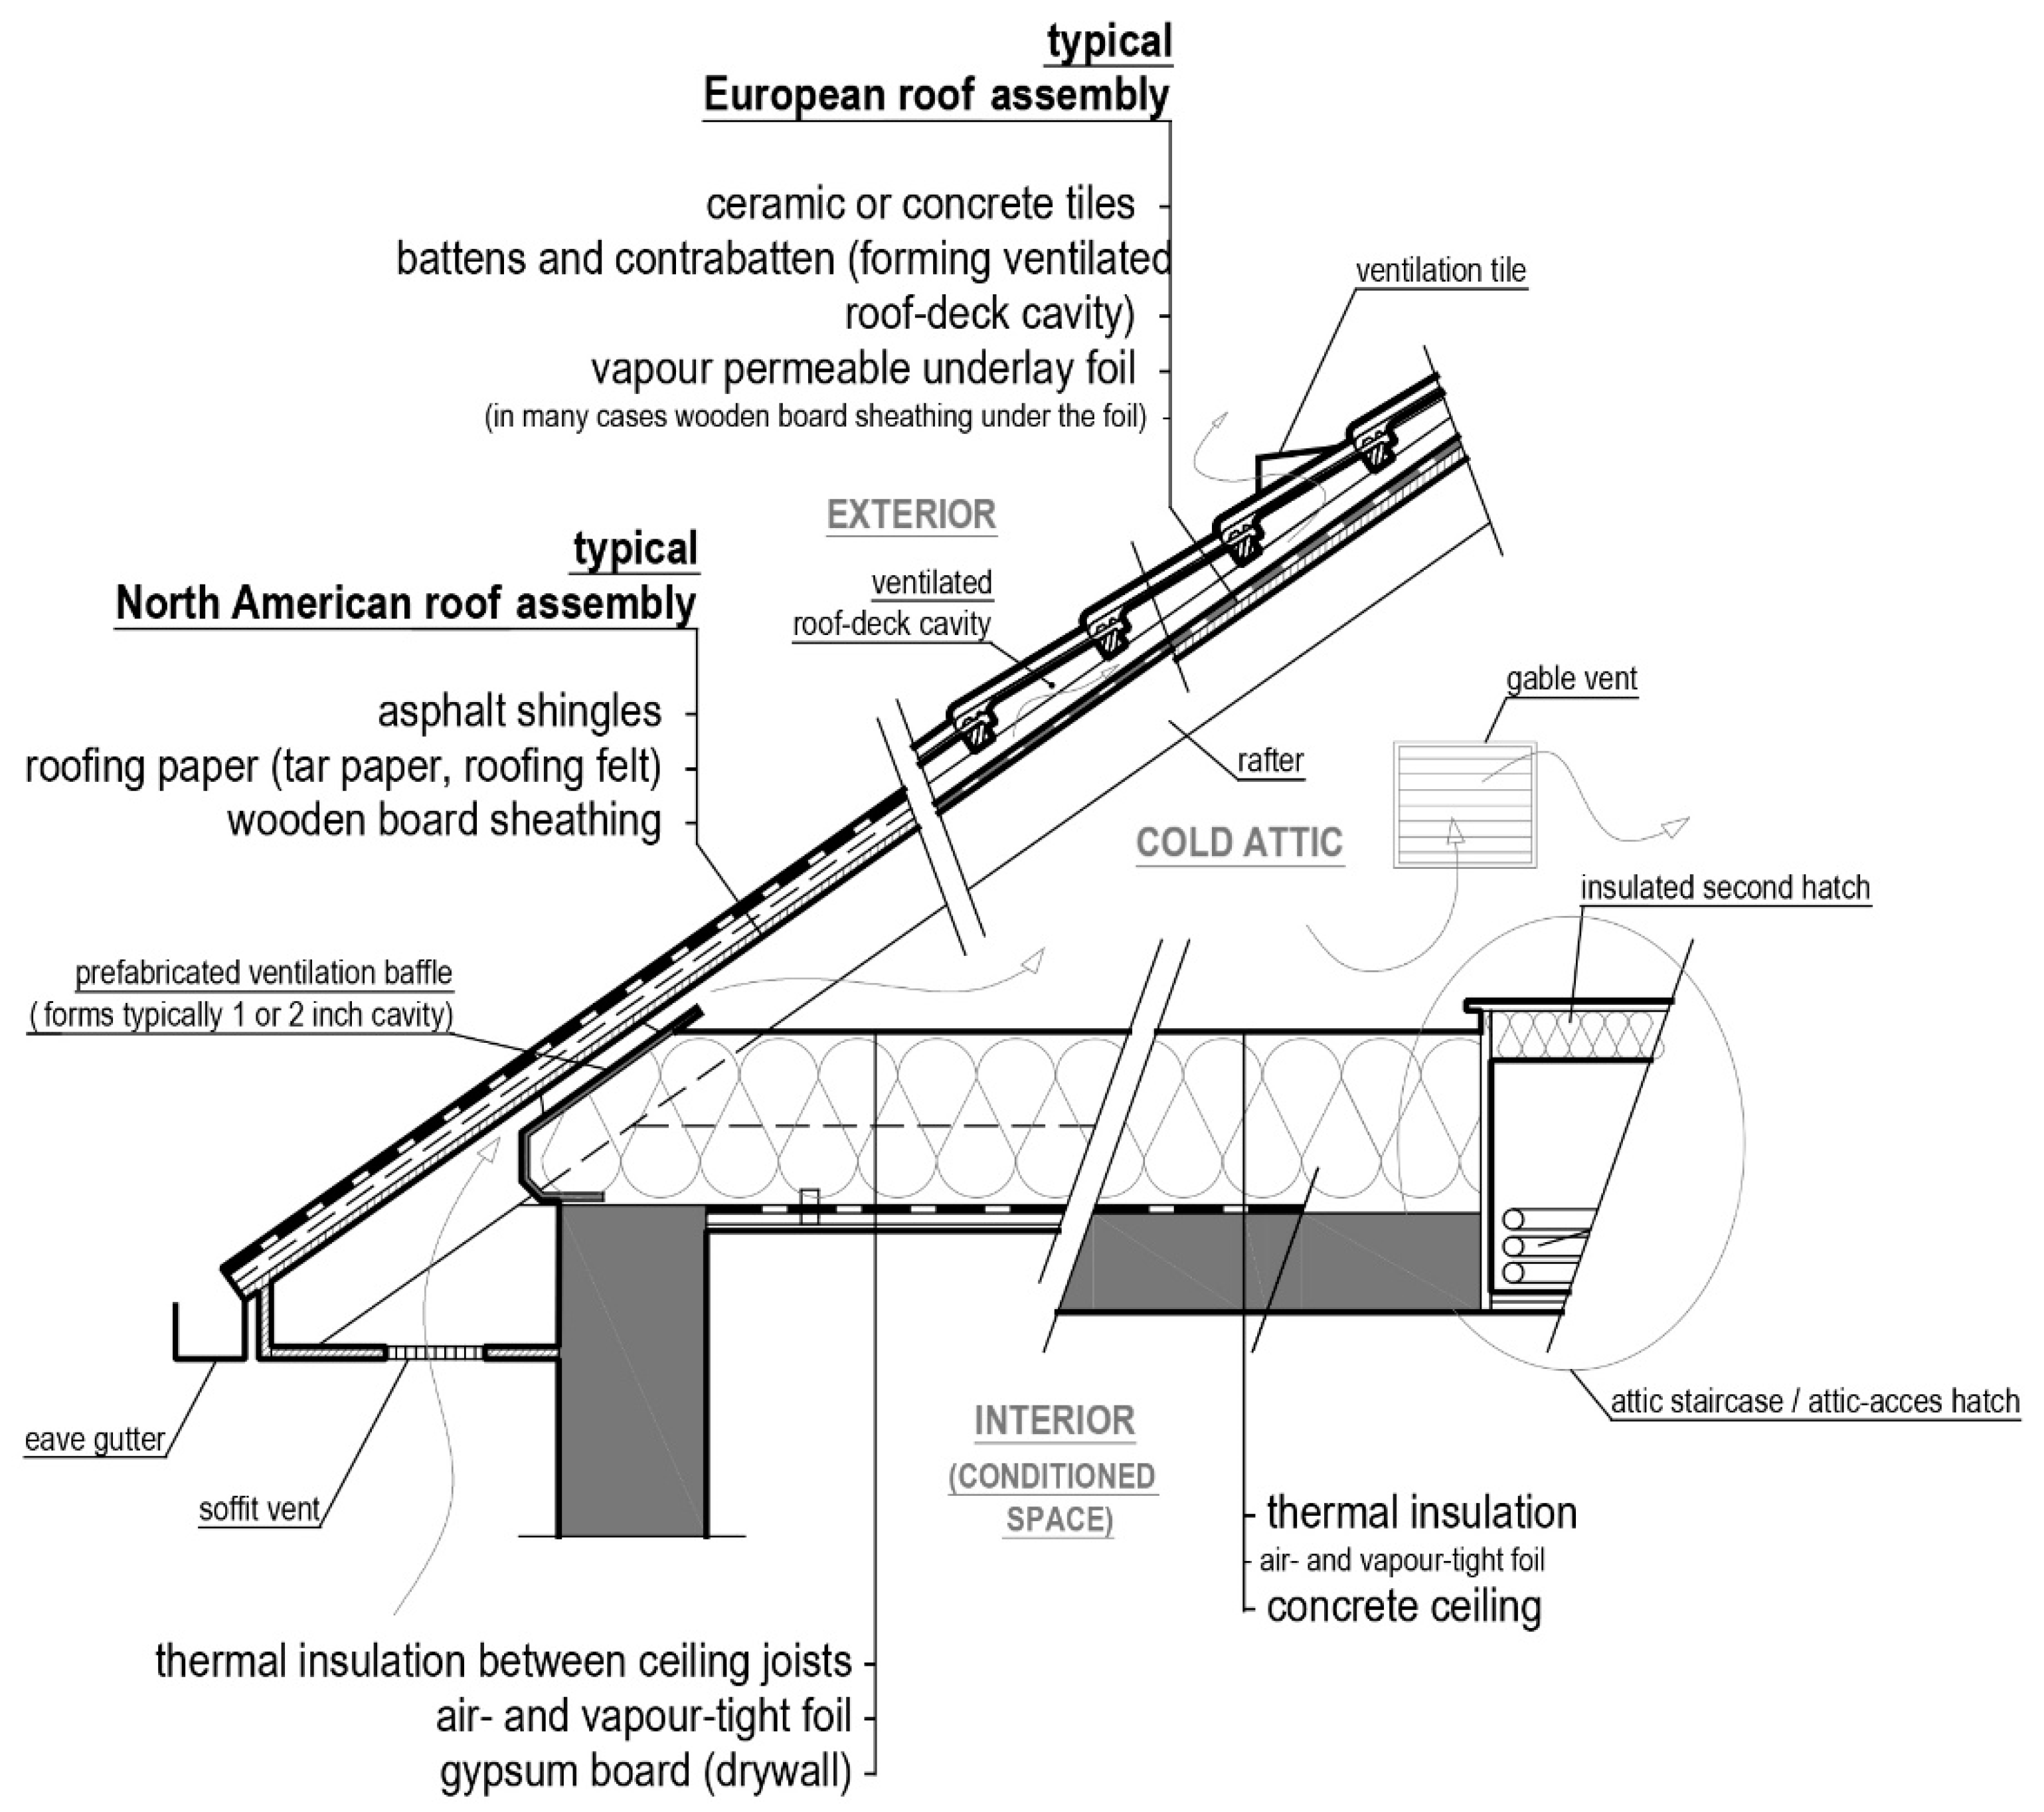 Energies Free Full Text Moisture Safe Cold Attics In Humid Climates Of Europe And North America Html